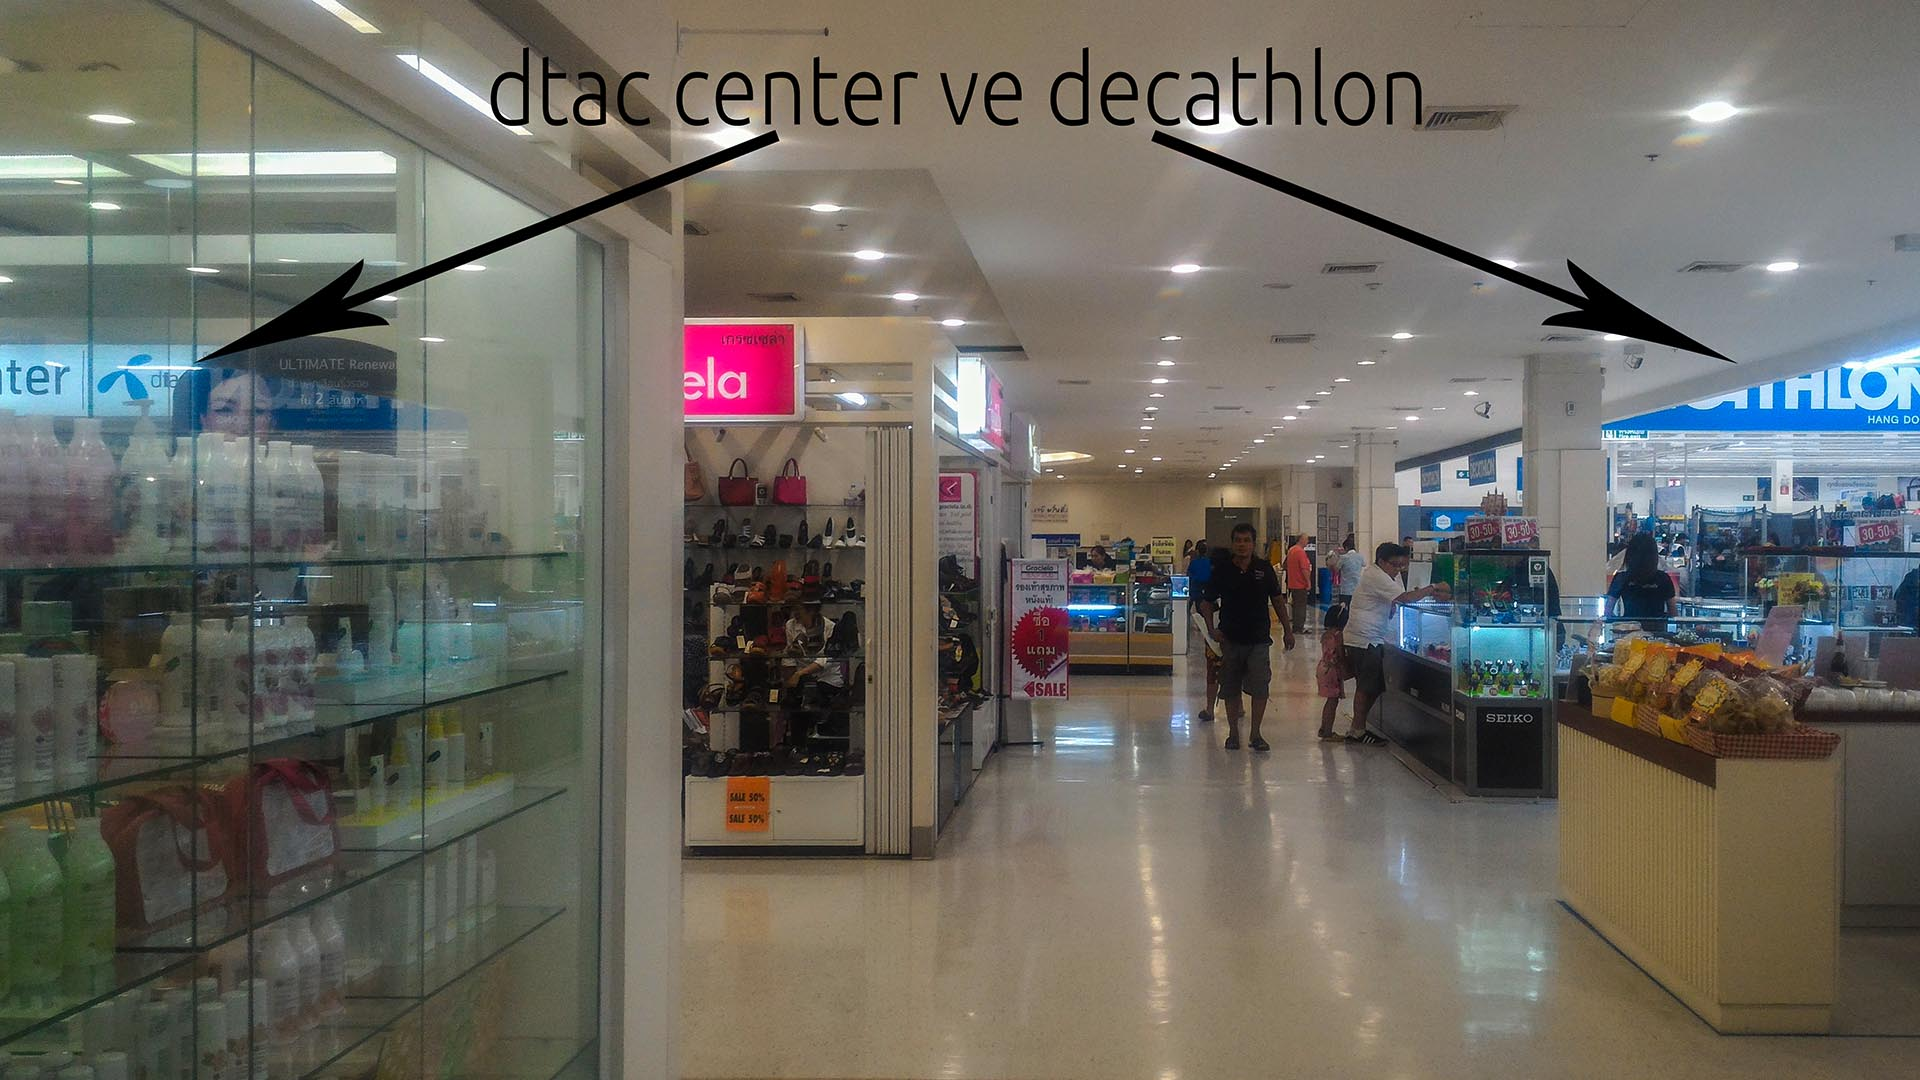 dtac ve decathlon